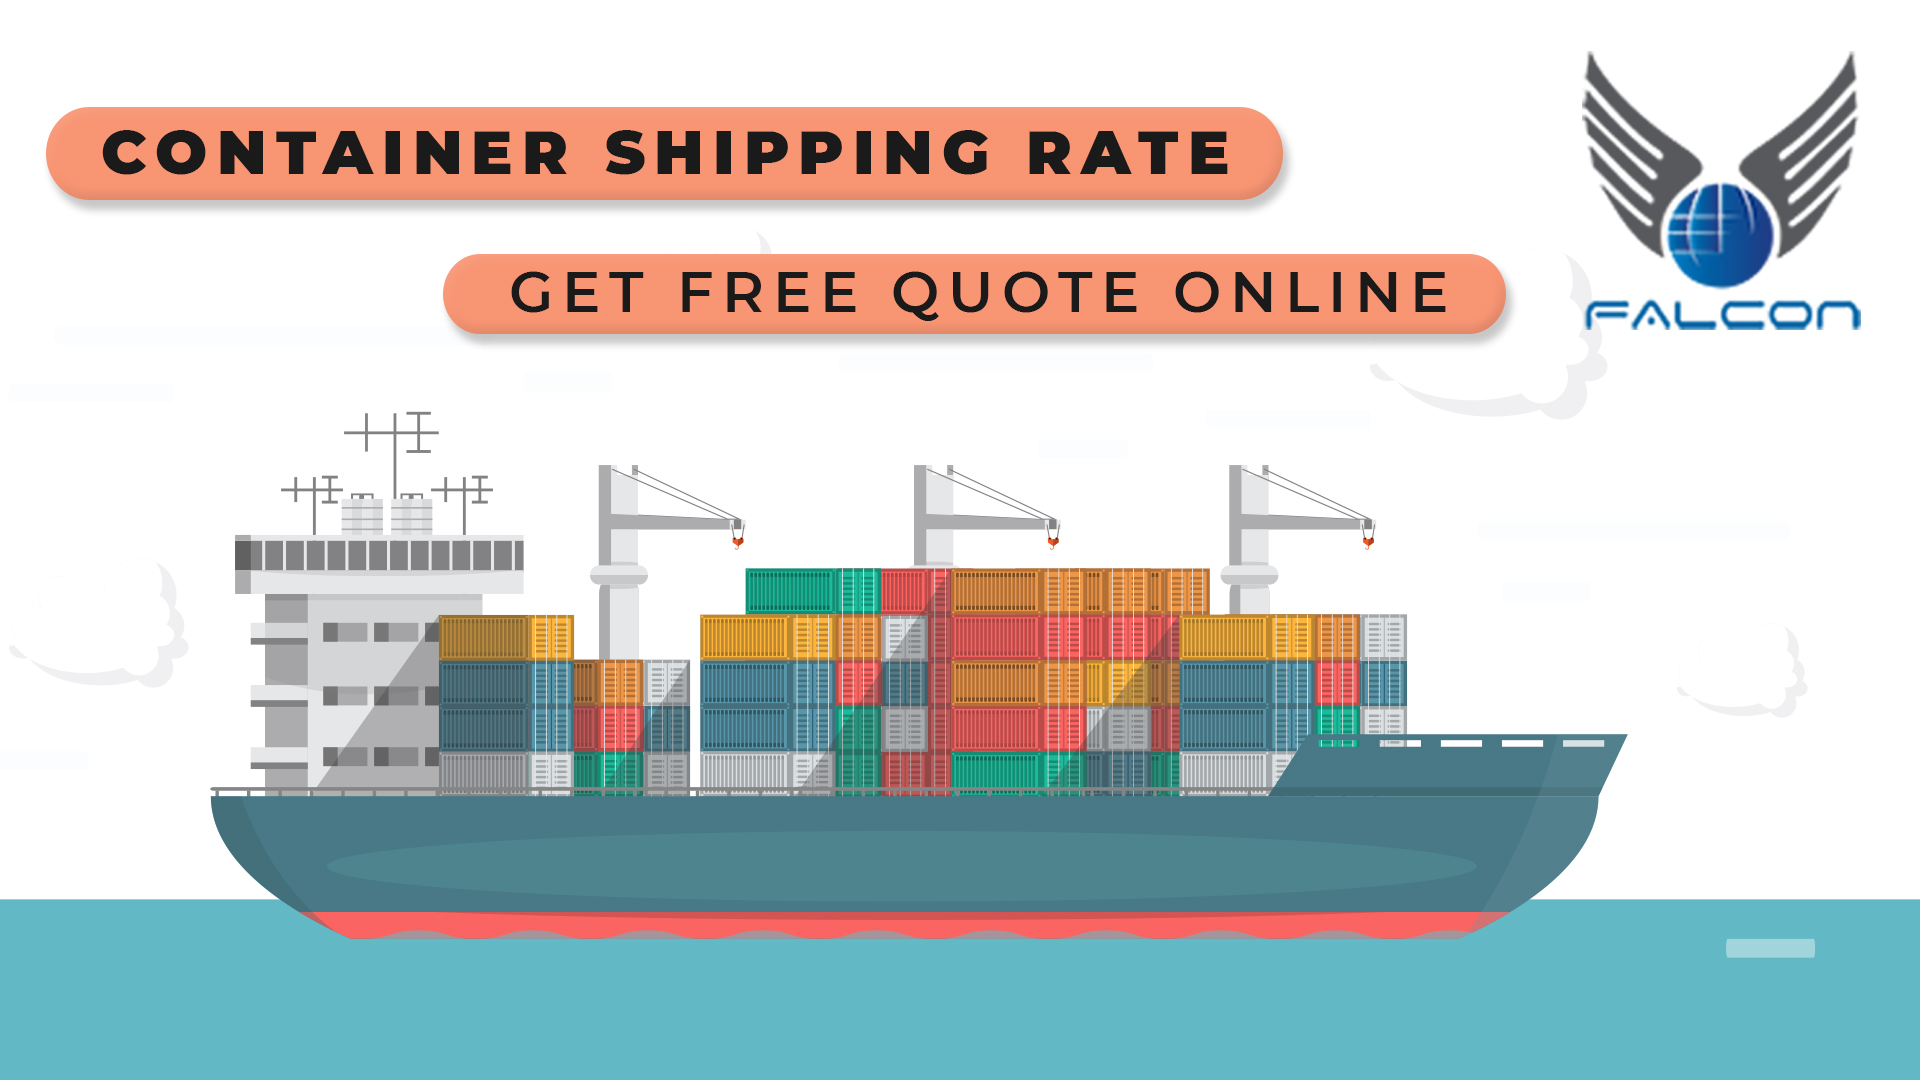 Container Shipping Rate